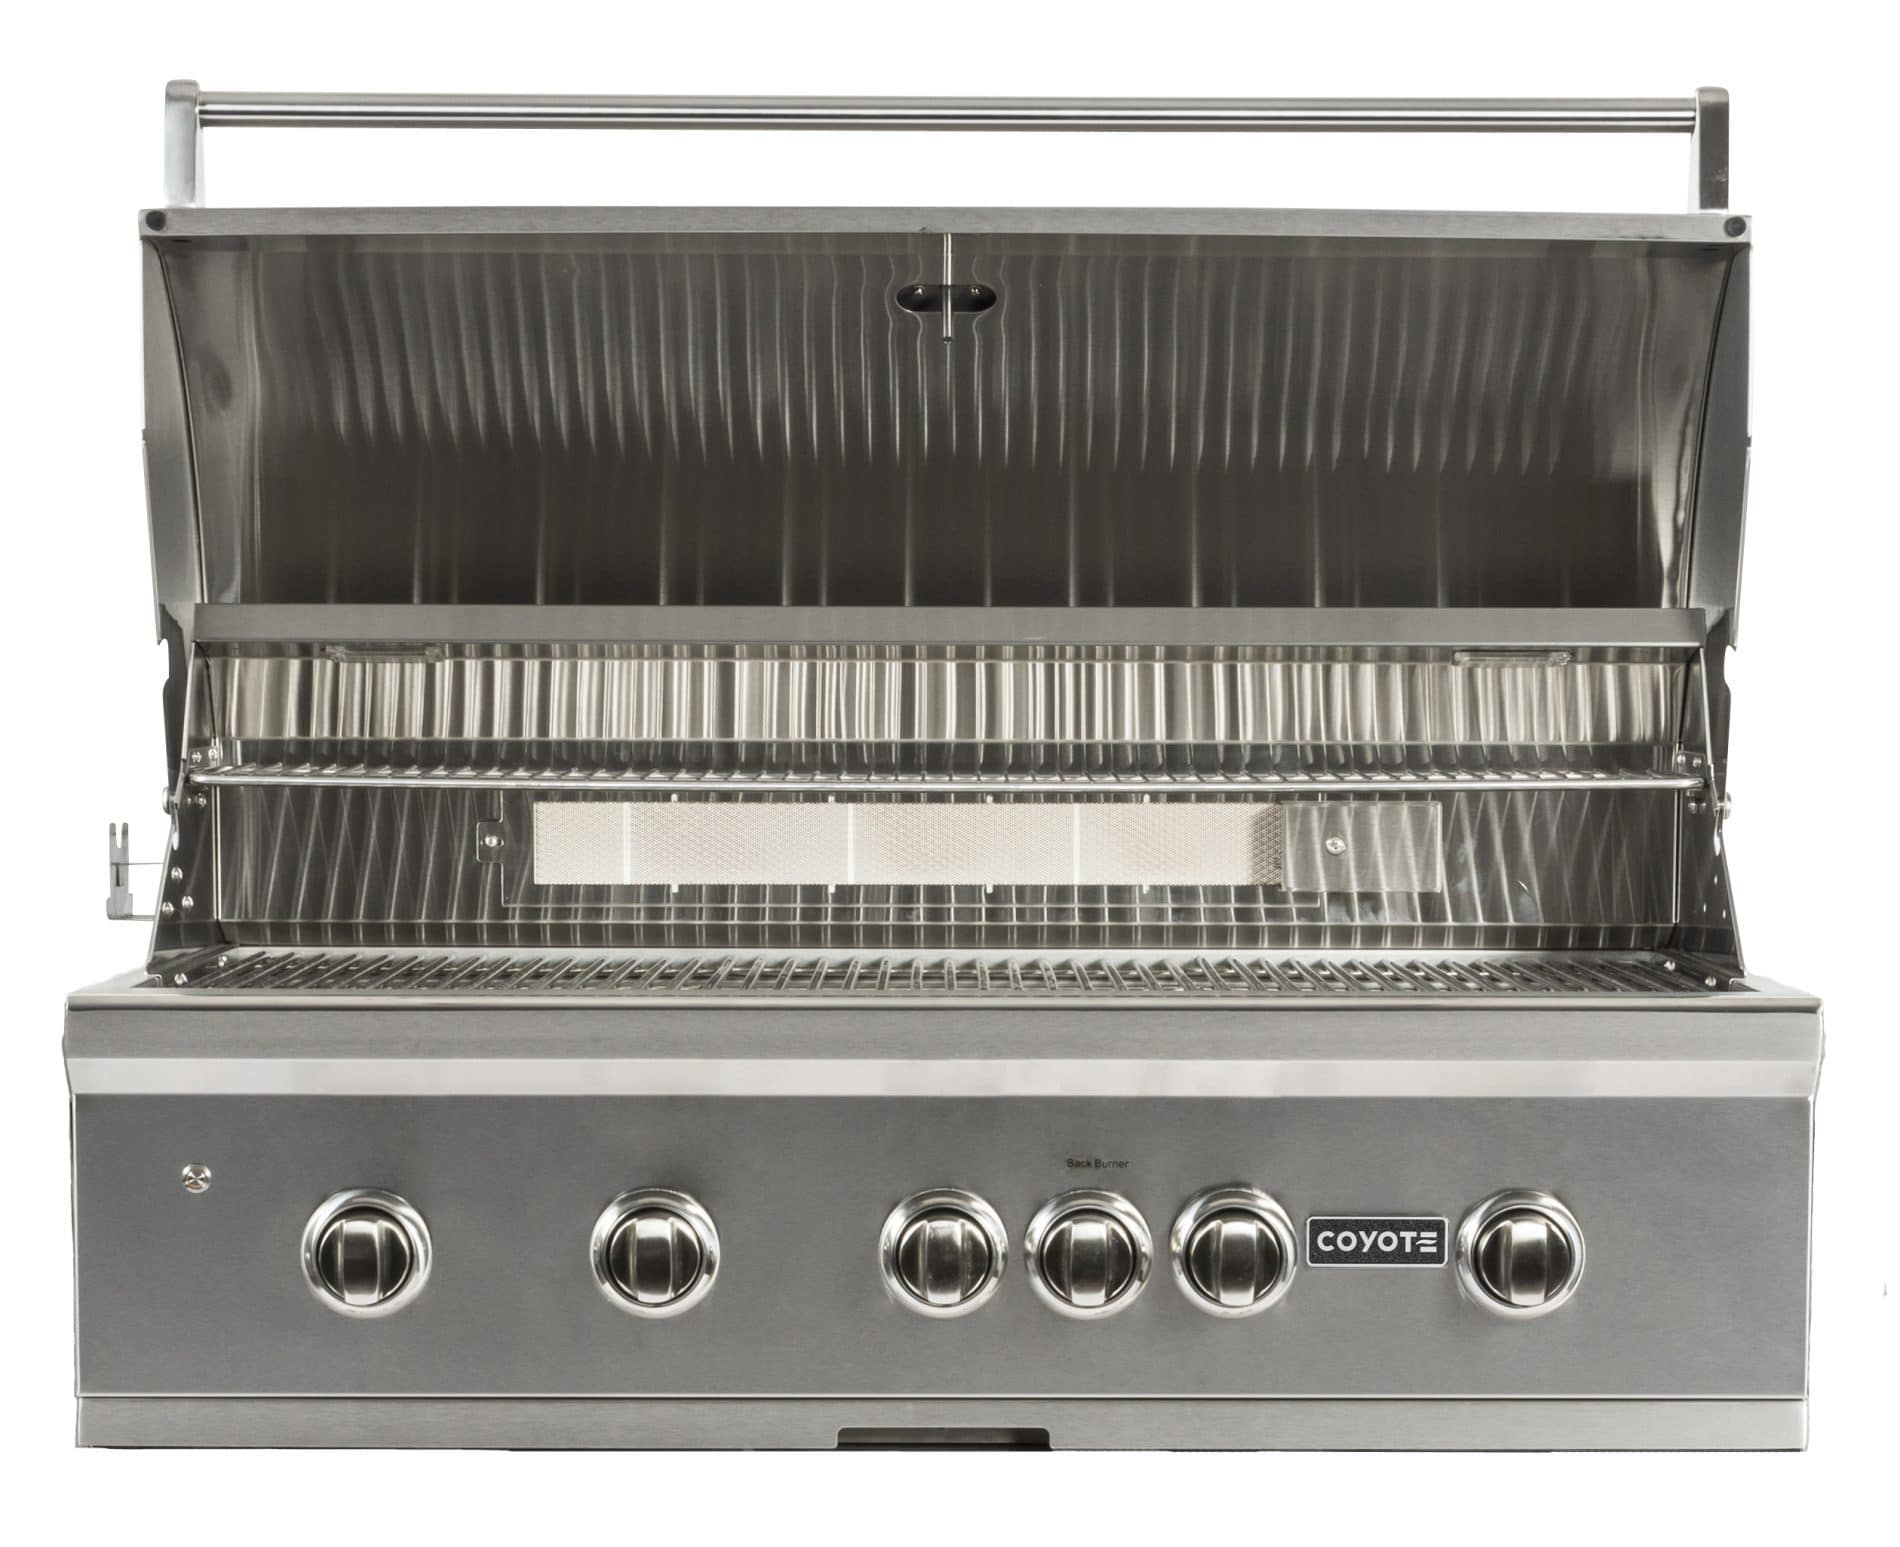 "ARCHIVED/OLDER MODEL: 42"" S-Series Grill (Model: C1SL42 LP/NG)"